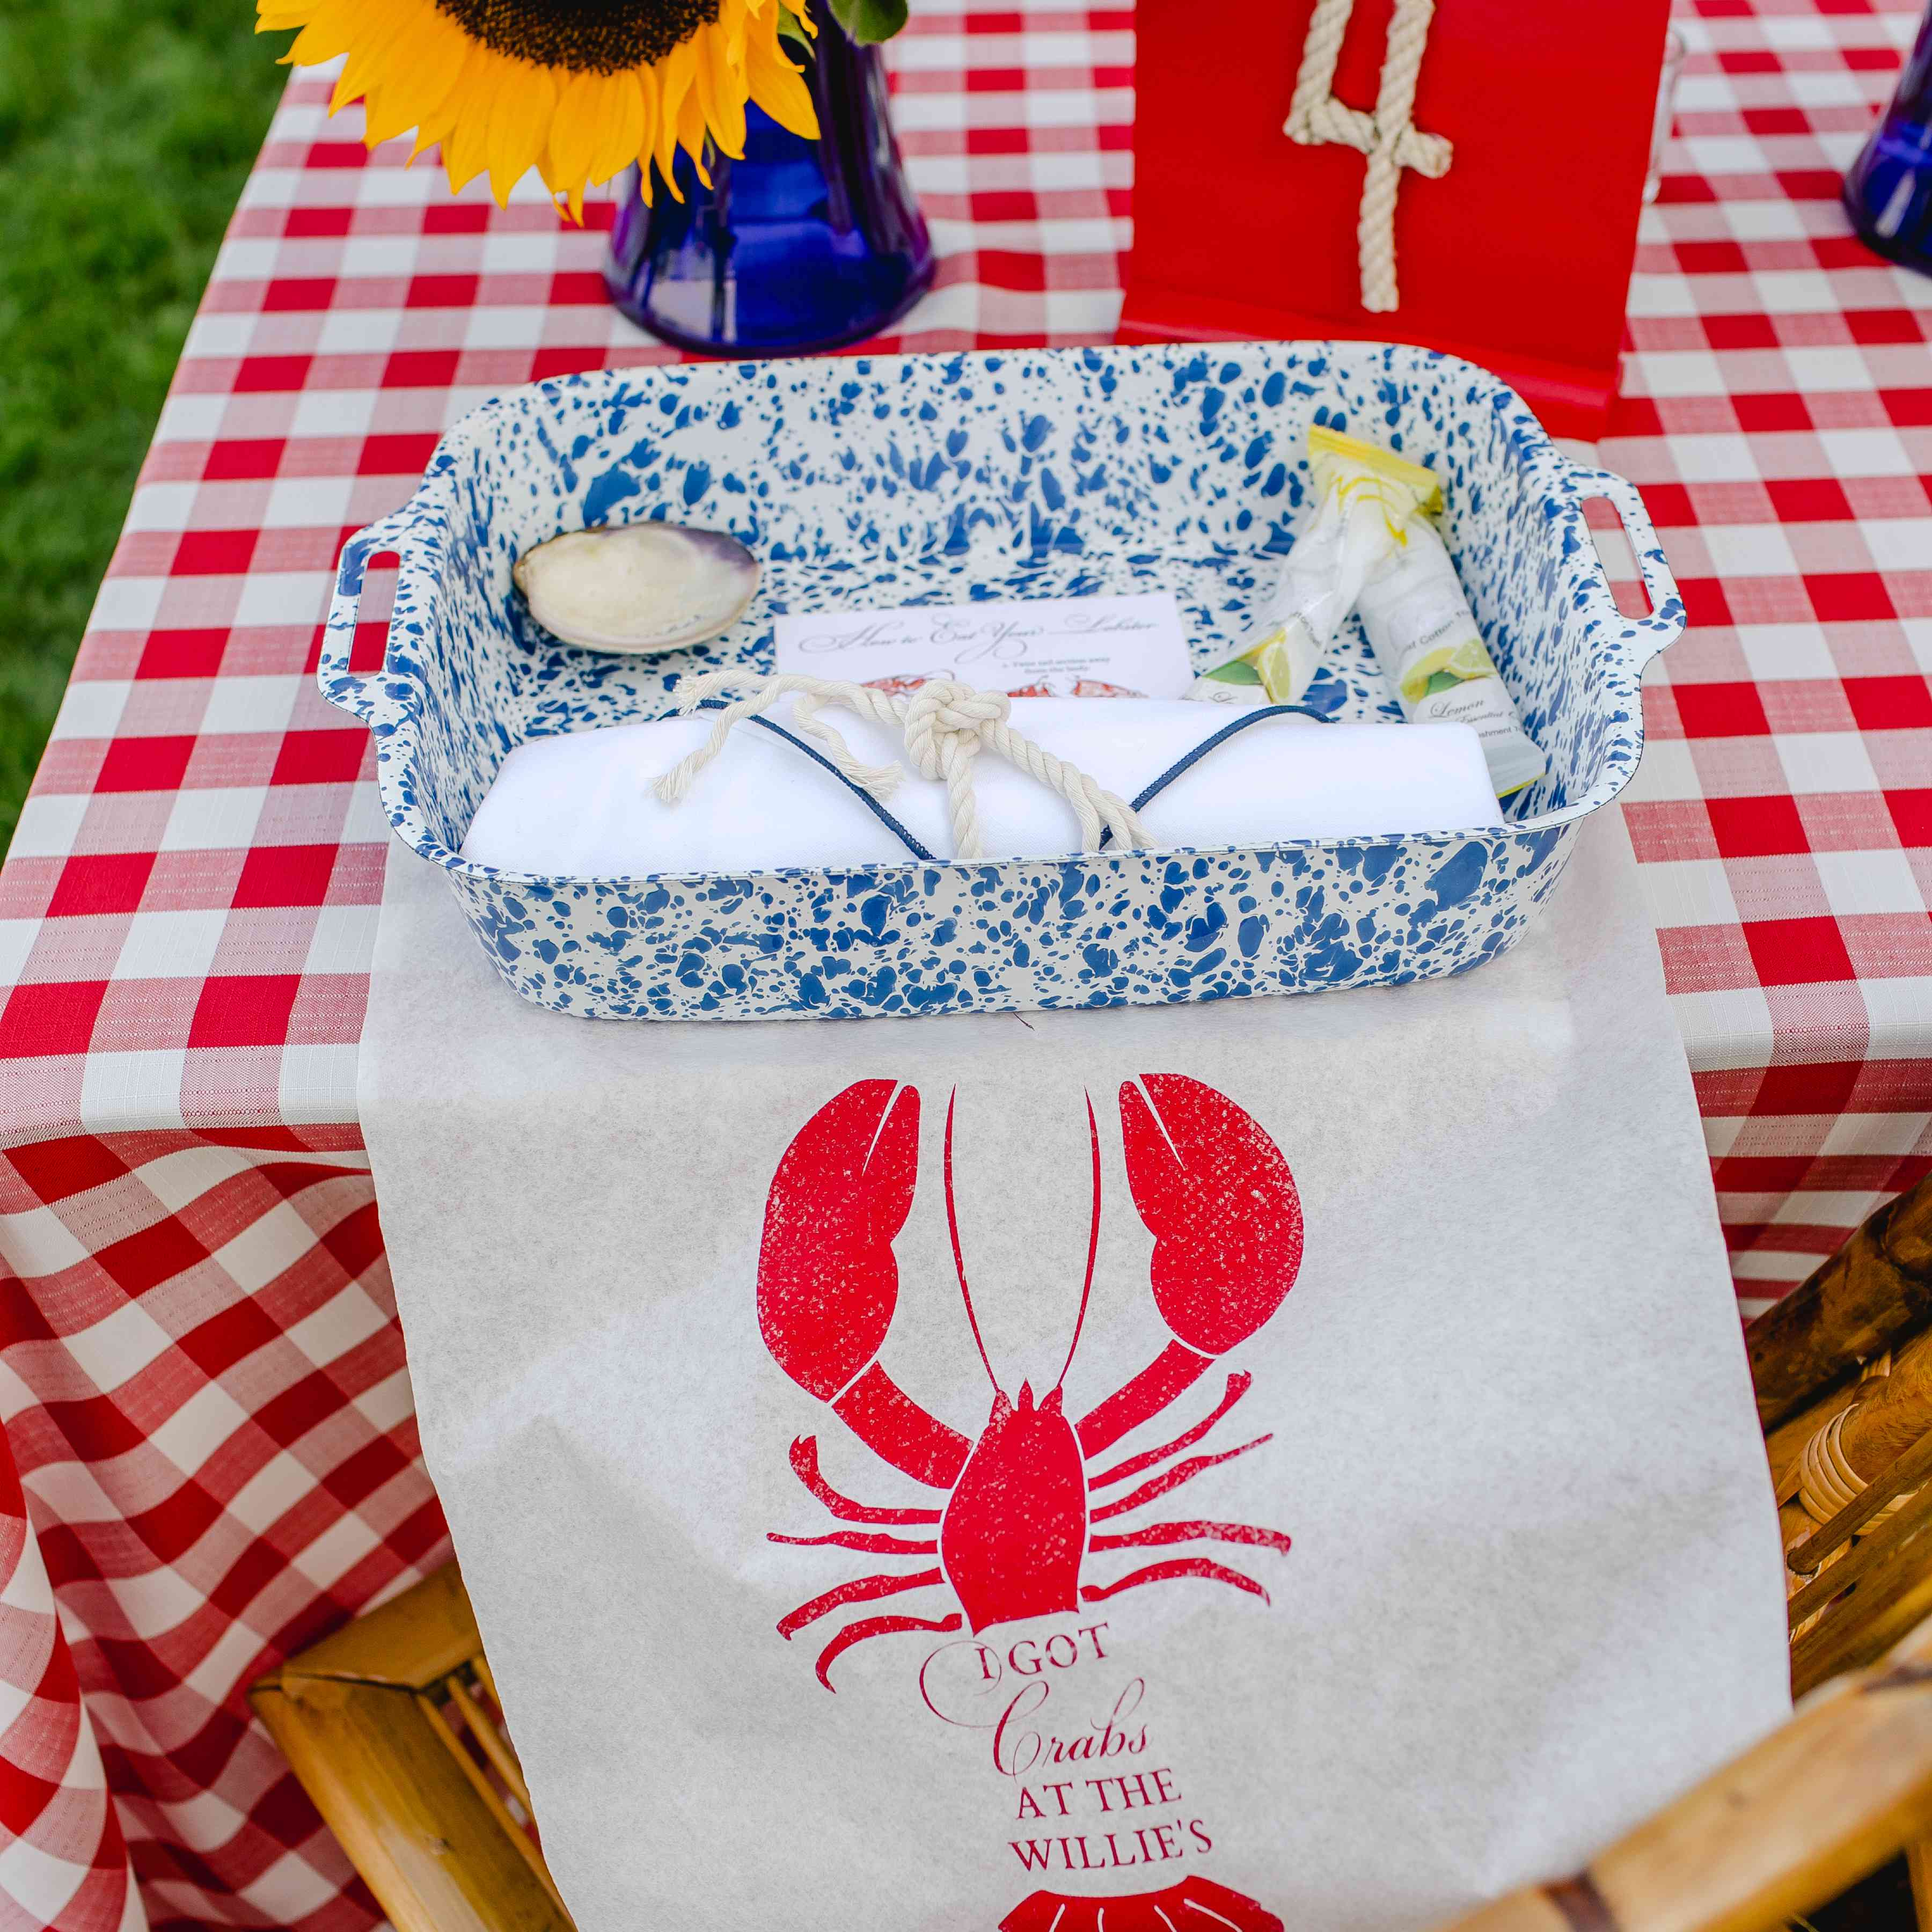 A place setting at an outdoor clam bake rehearsal dinenr